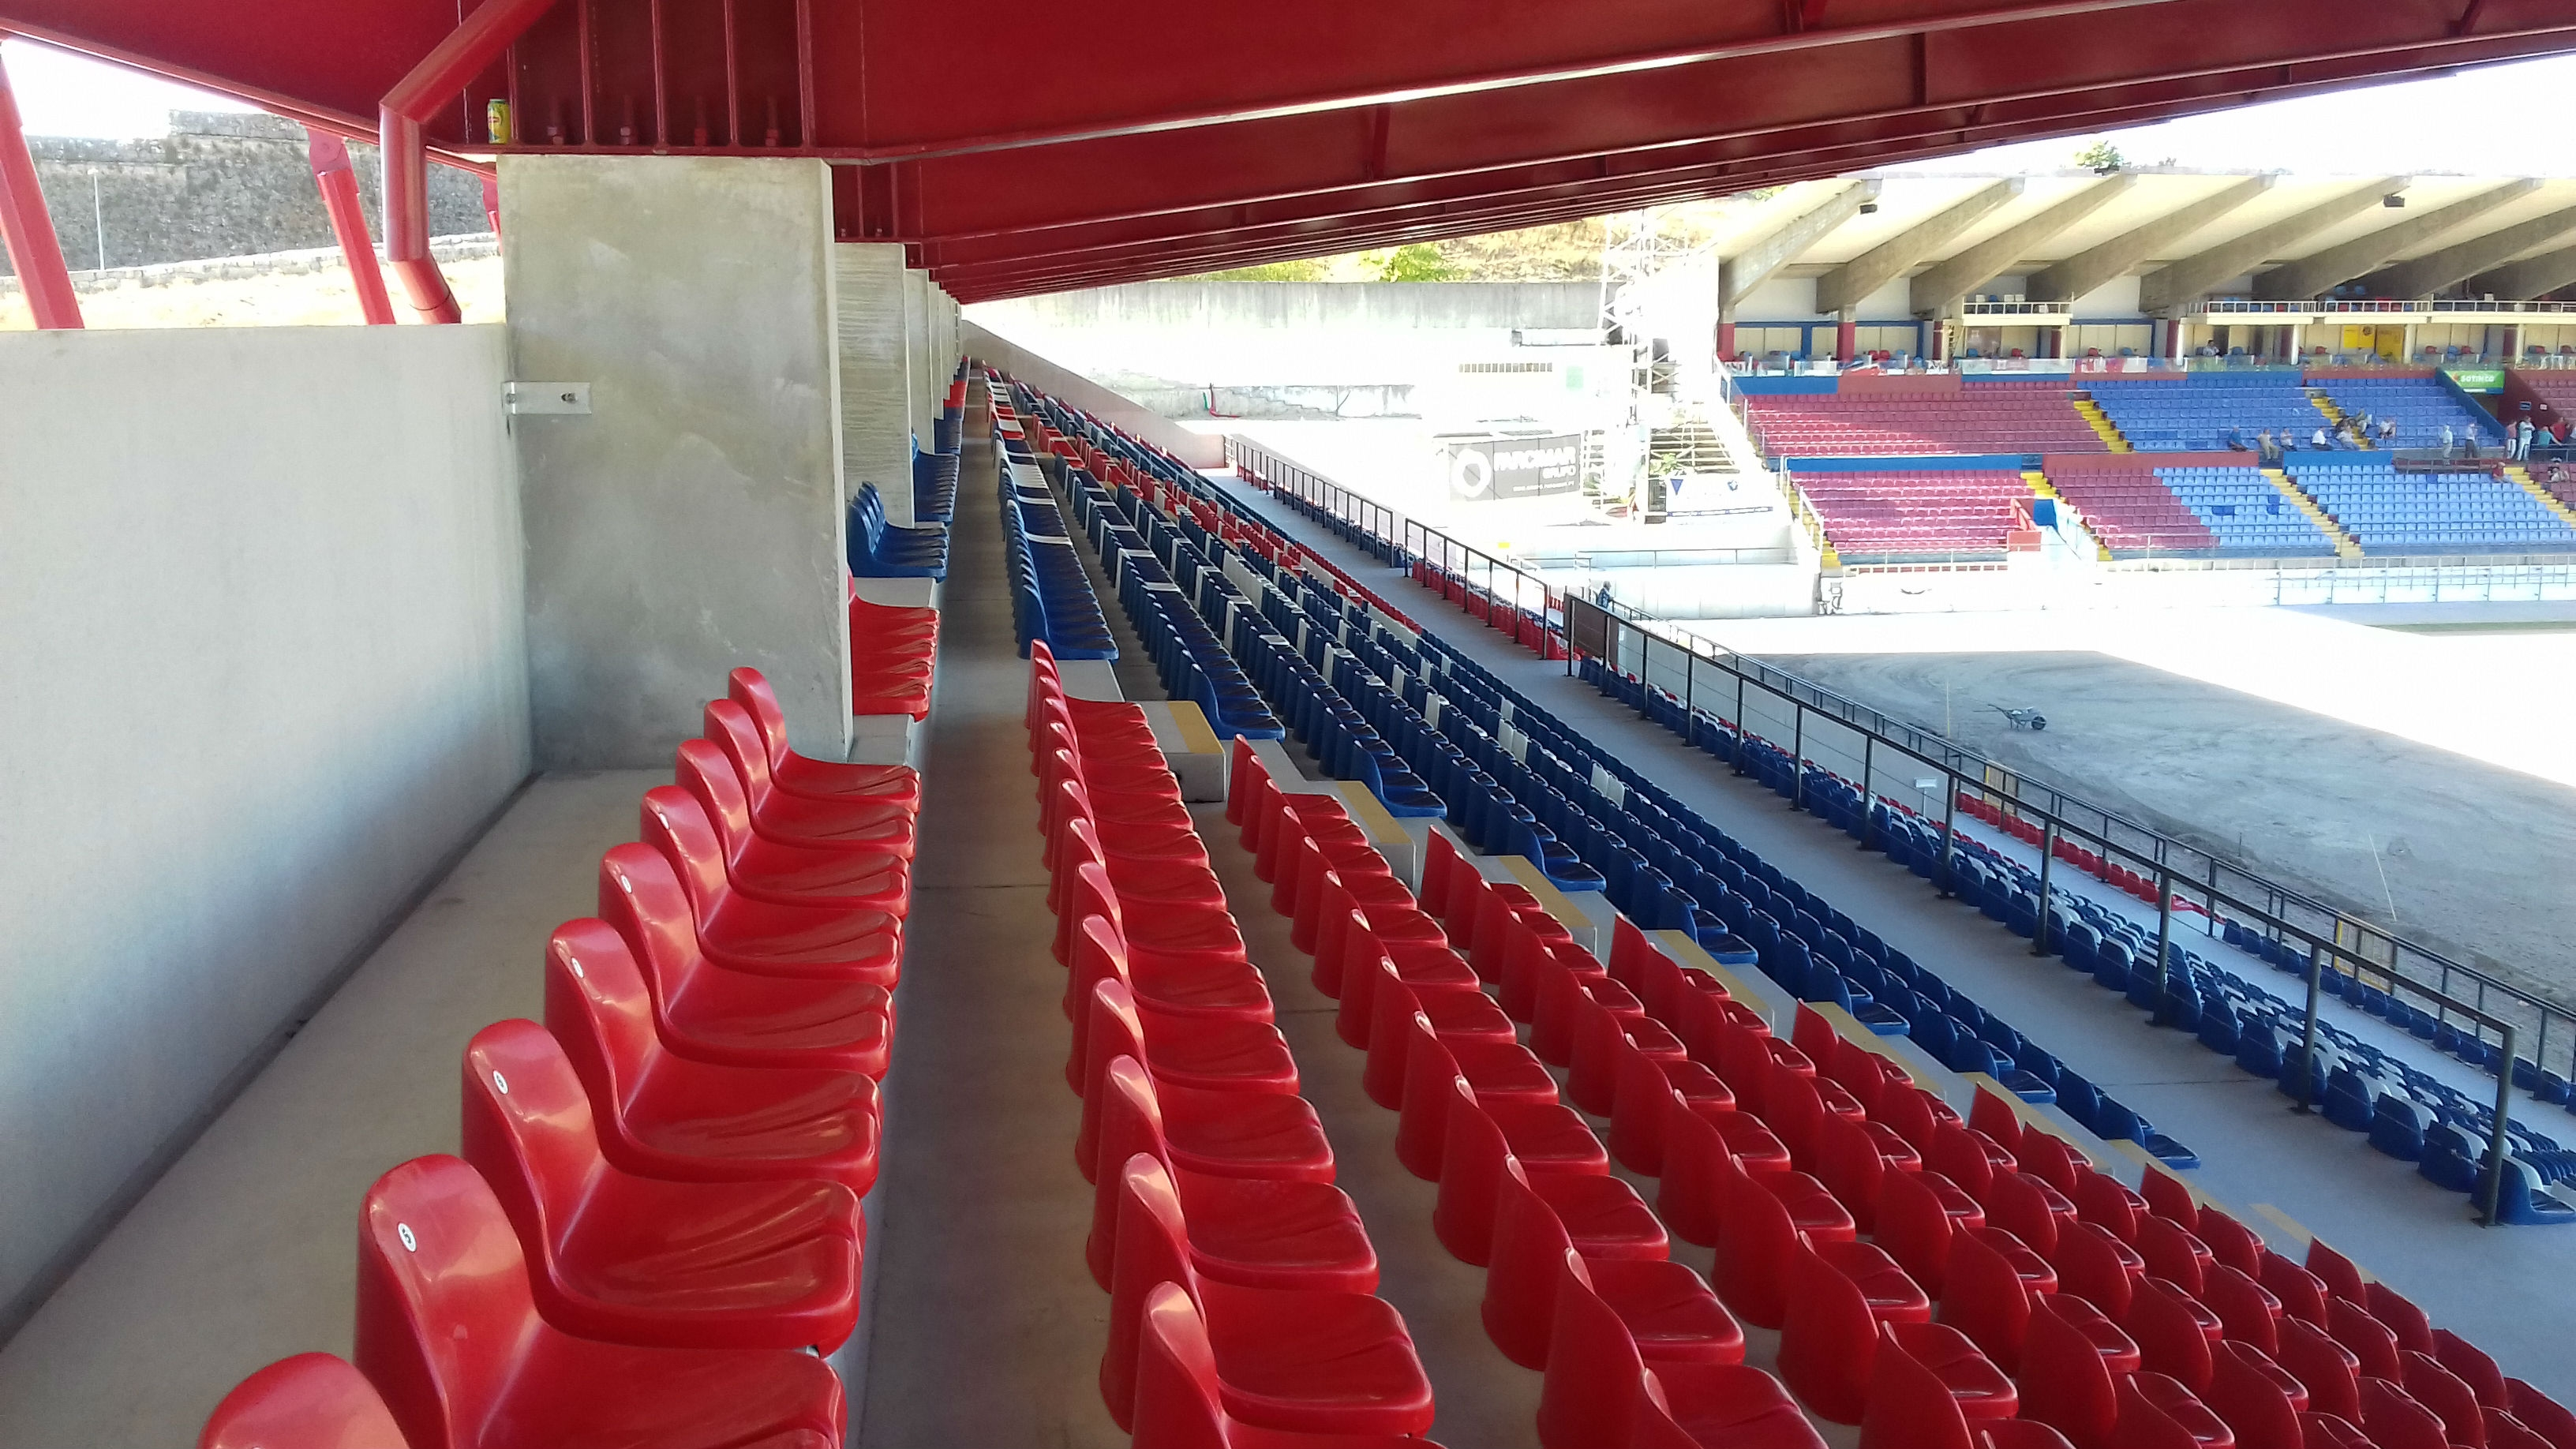 SOUTH GRANDSTAND OF THE ENG.º MANUEL BRANCO TEIXEIRA STADIUM FOR THE GRUPO DESPORTIVO DE CHAVES